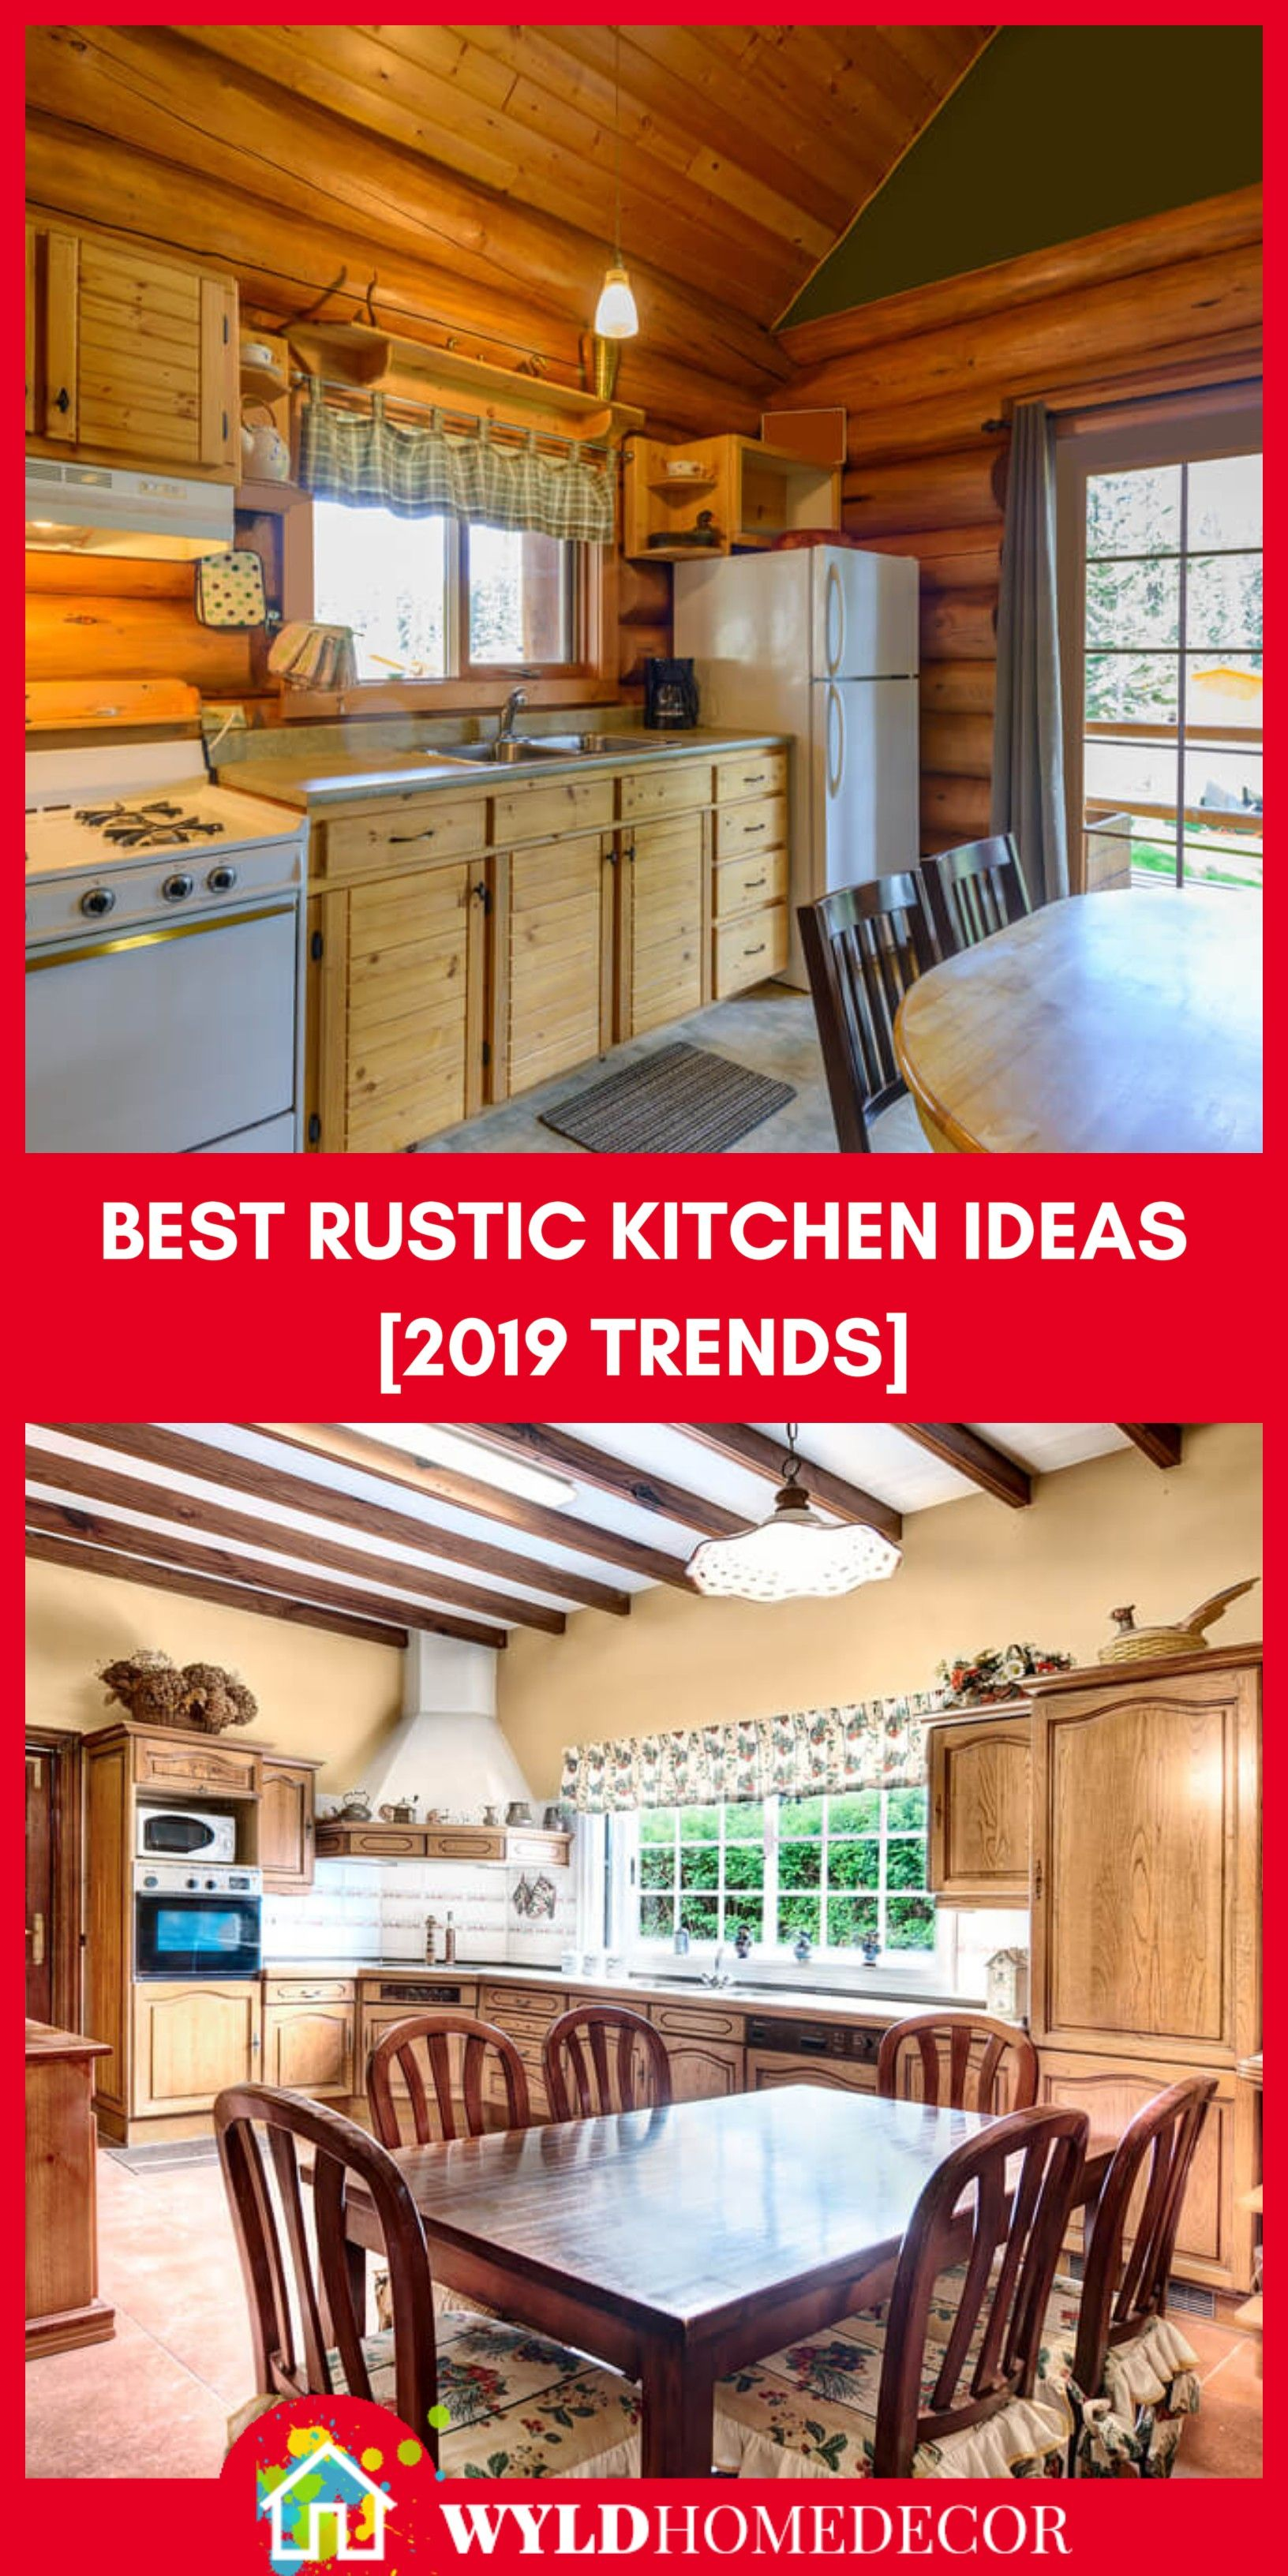 Best Rustic Kitchen 2019 Trends Head On Over To The The Blog For